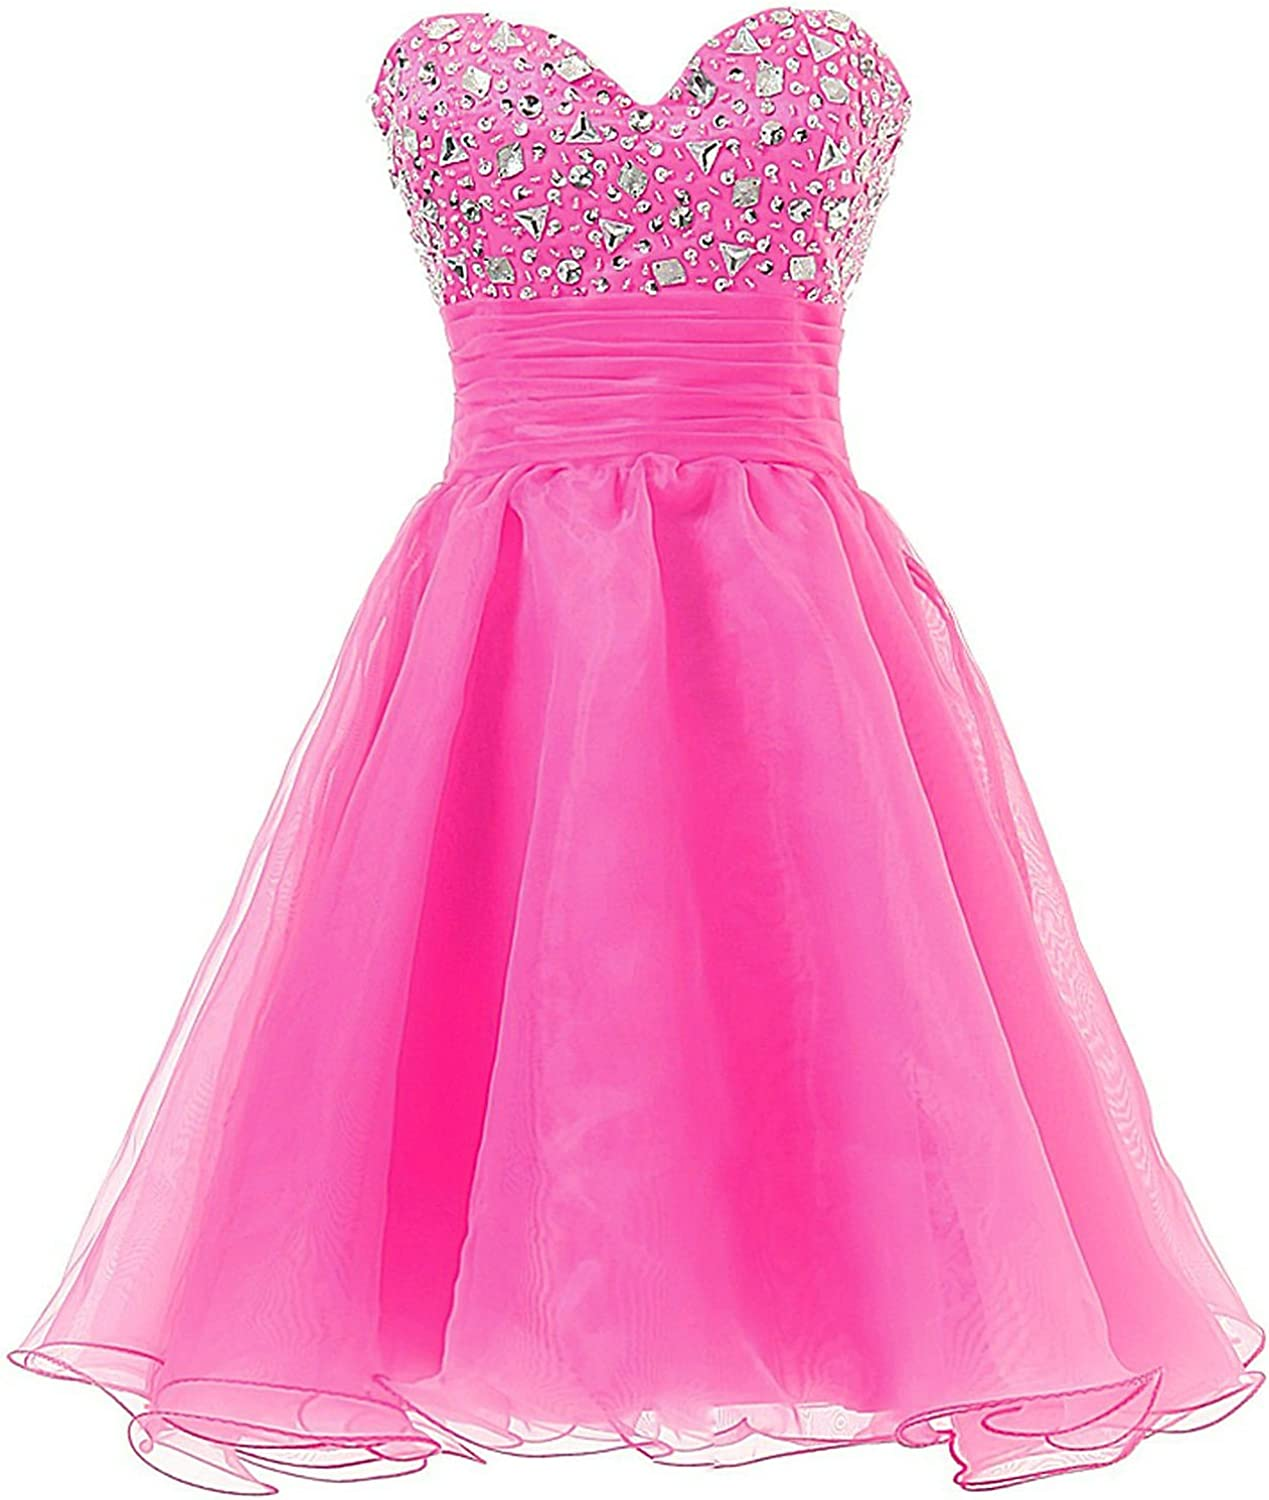 QY Bride Sweet Girl Dance Birthday Party Dresses Organza Short